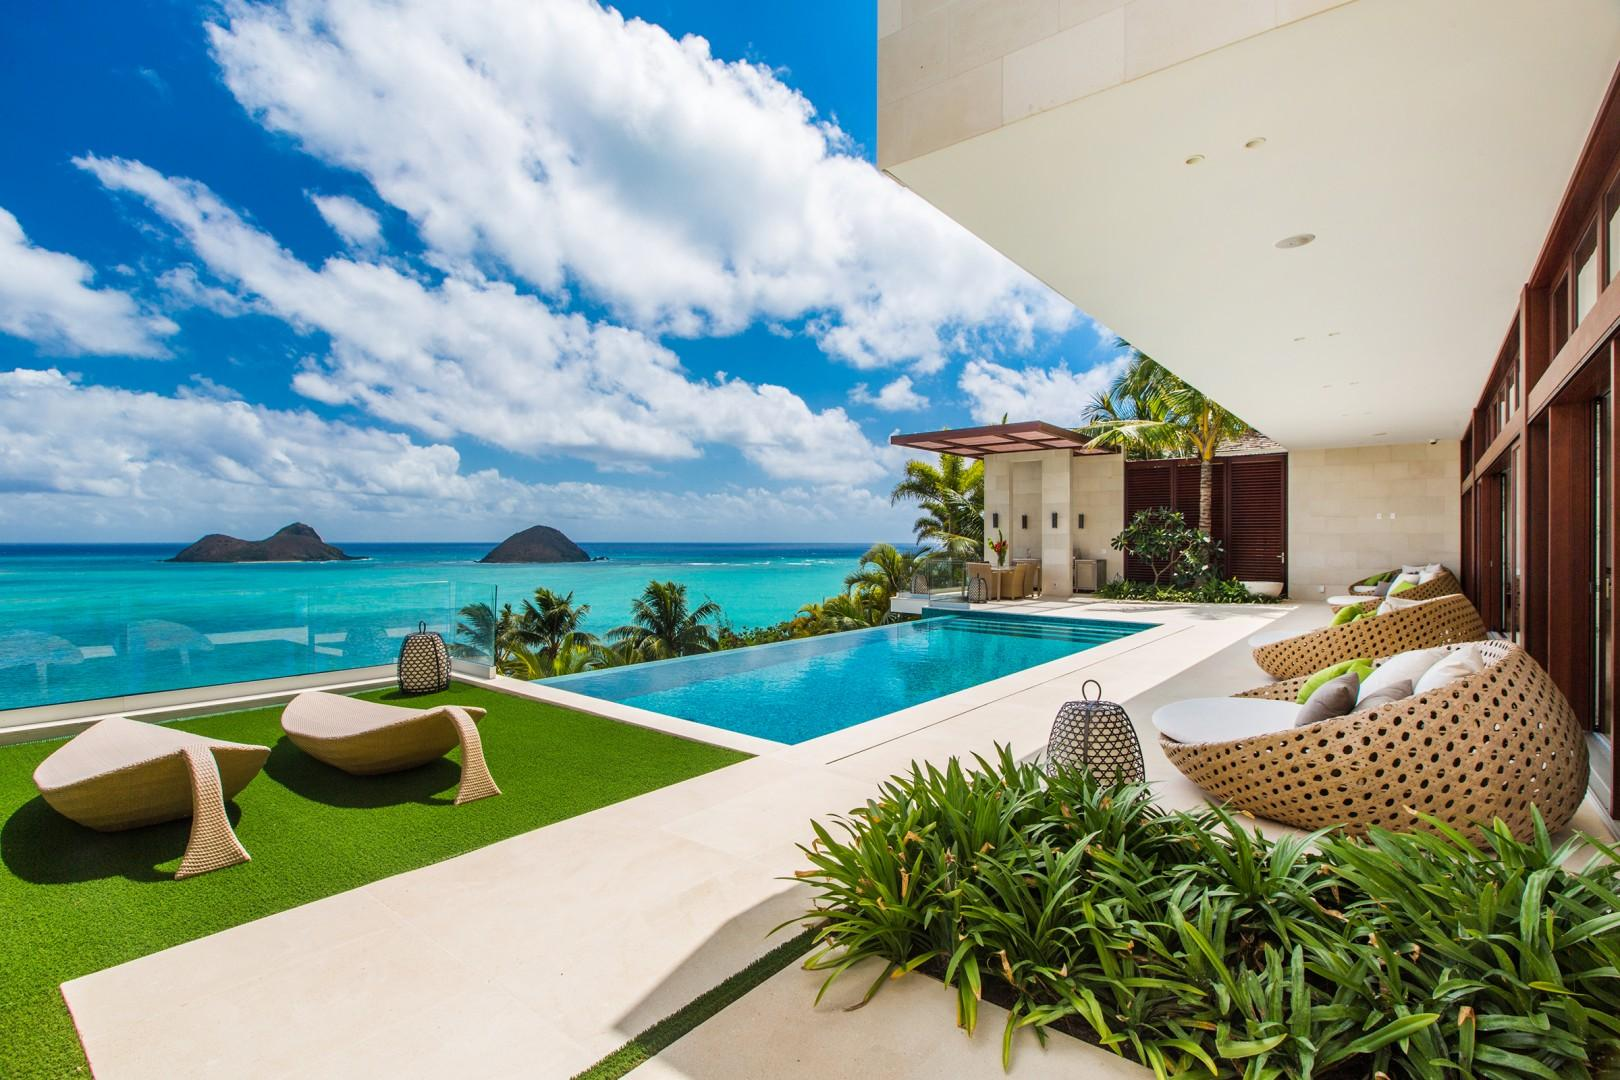 Heavenly views from the infinity edge pool